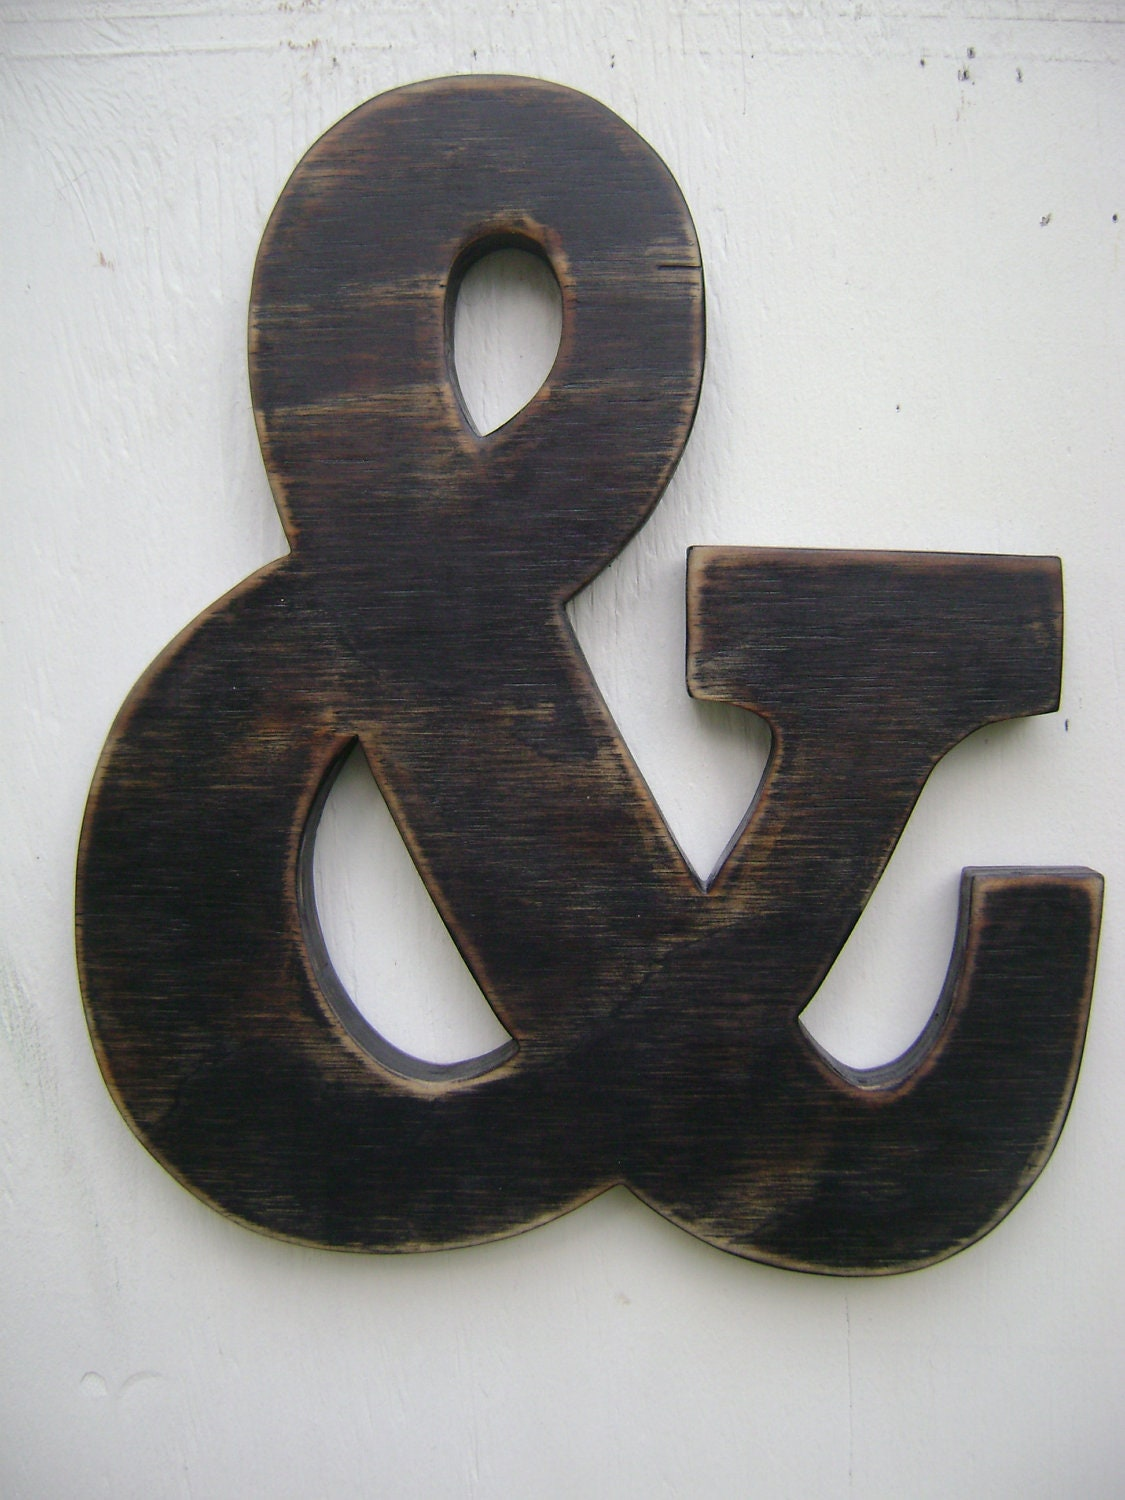 ampersand and sign rustic weddingphoto prop wall hanging. Black Bedroom Furniture Sets. Home Design Ideas